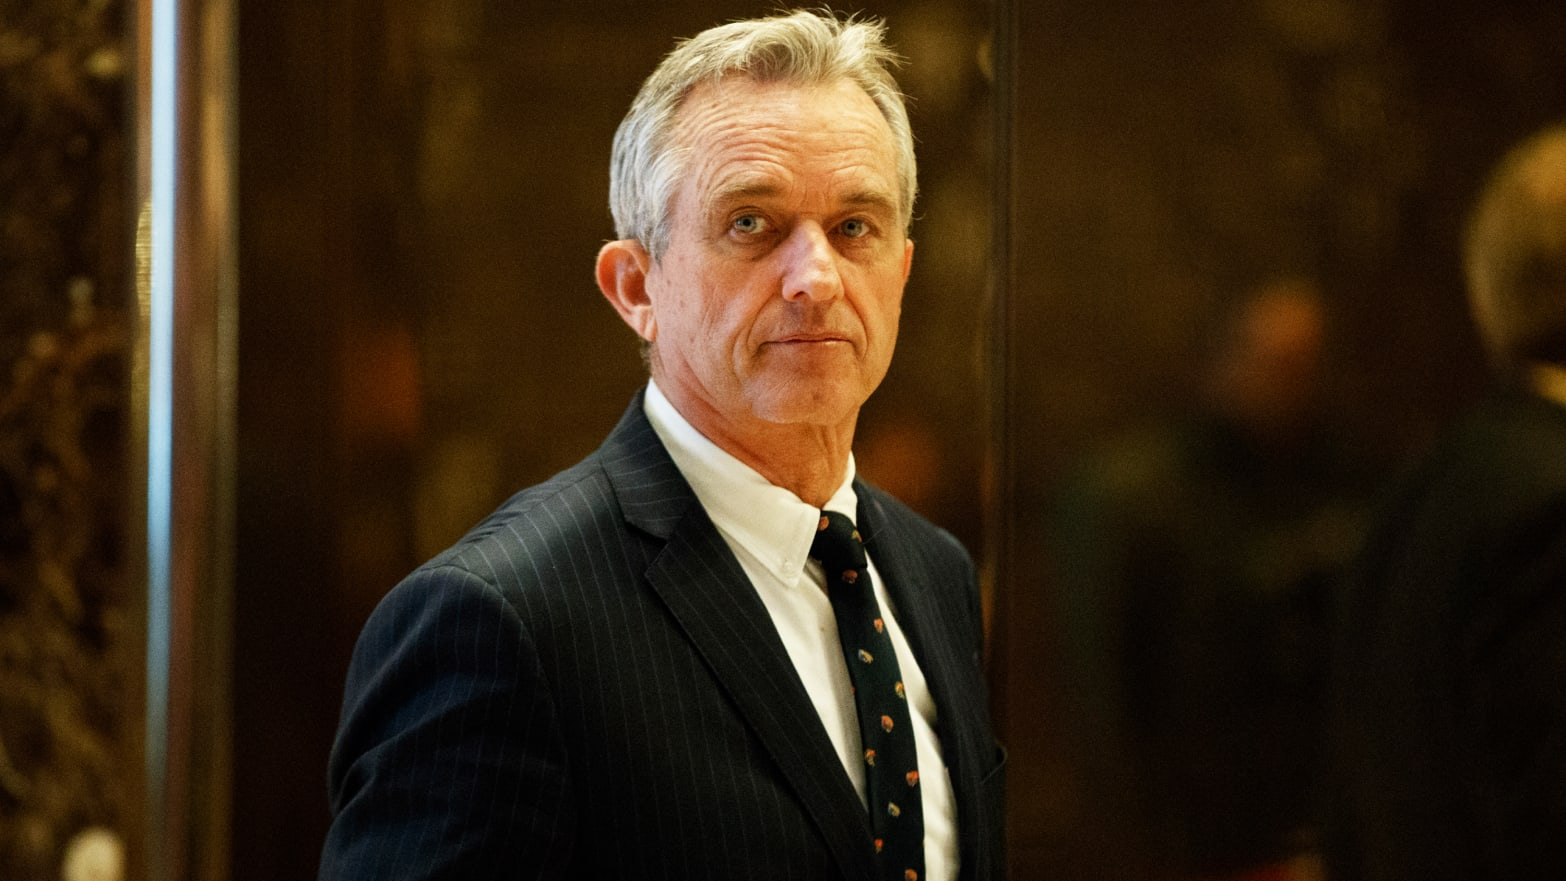 Robert Kennedy Jr.: The Trump White House Has Shut Me Out on Vaccines